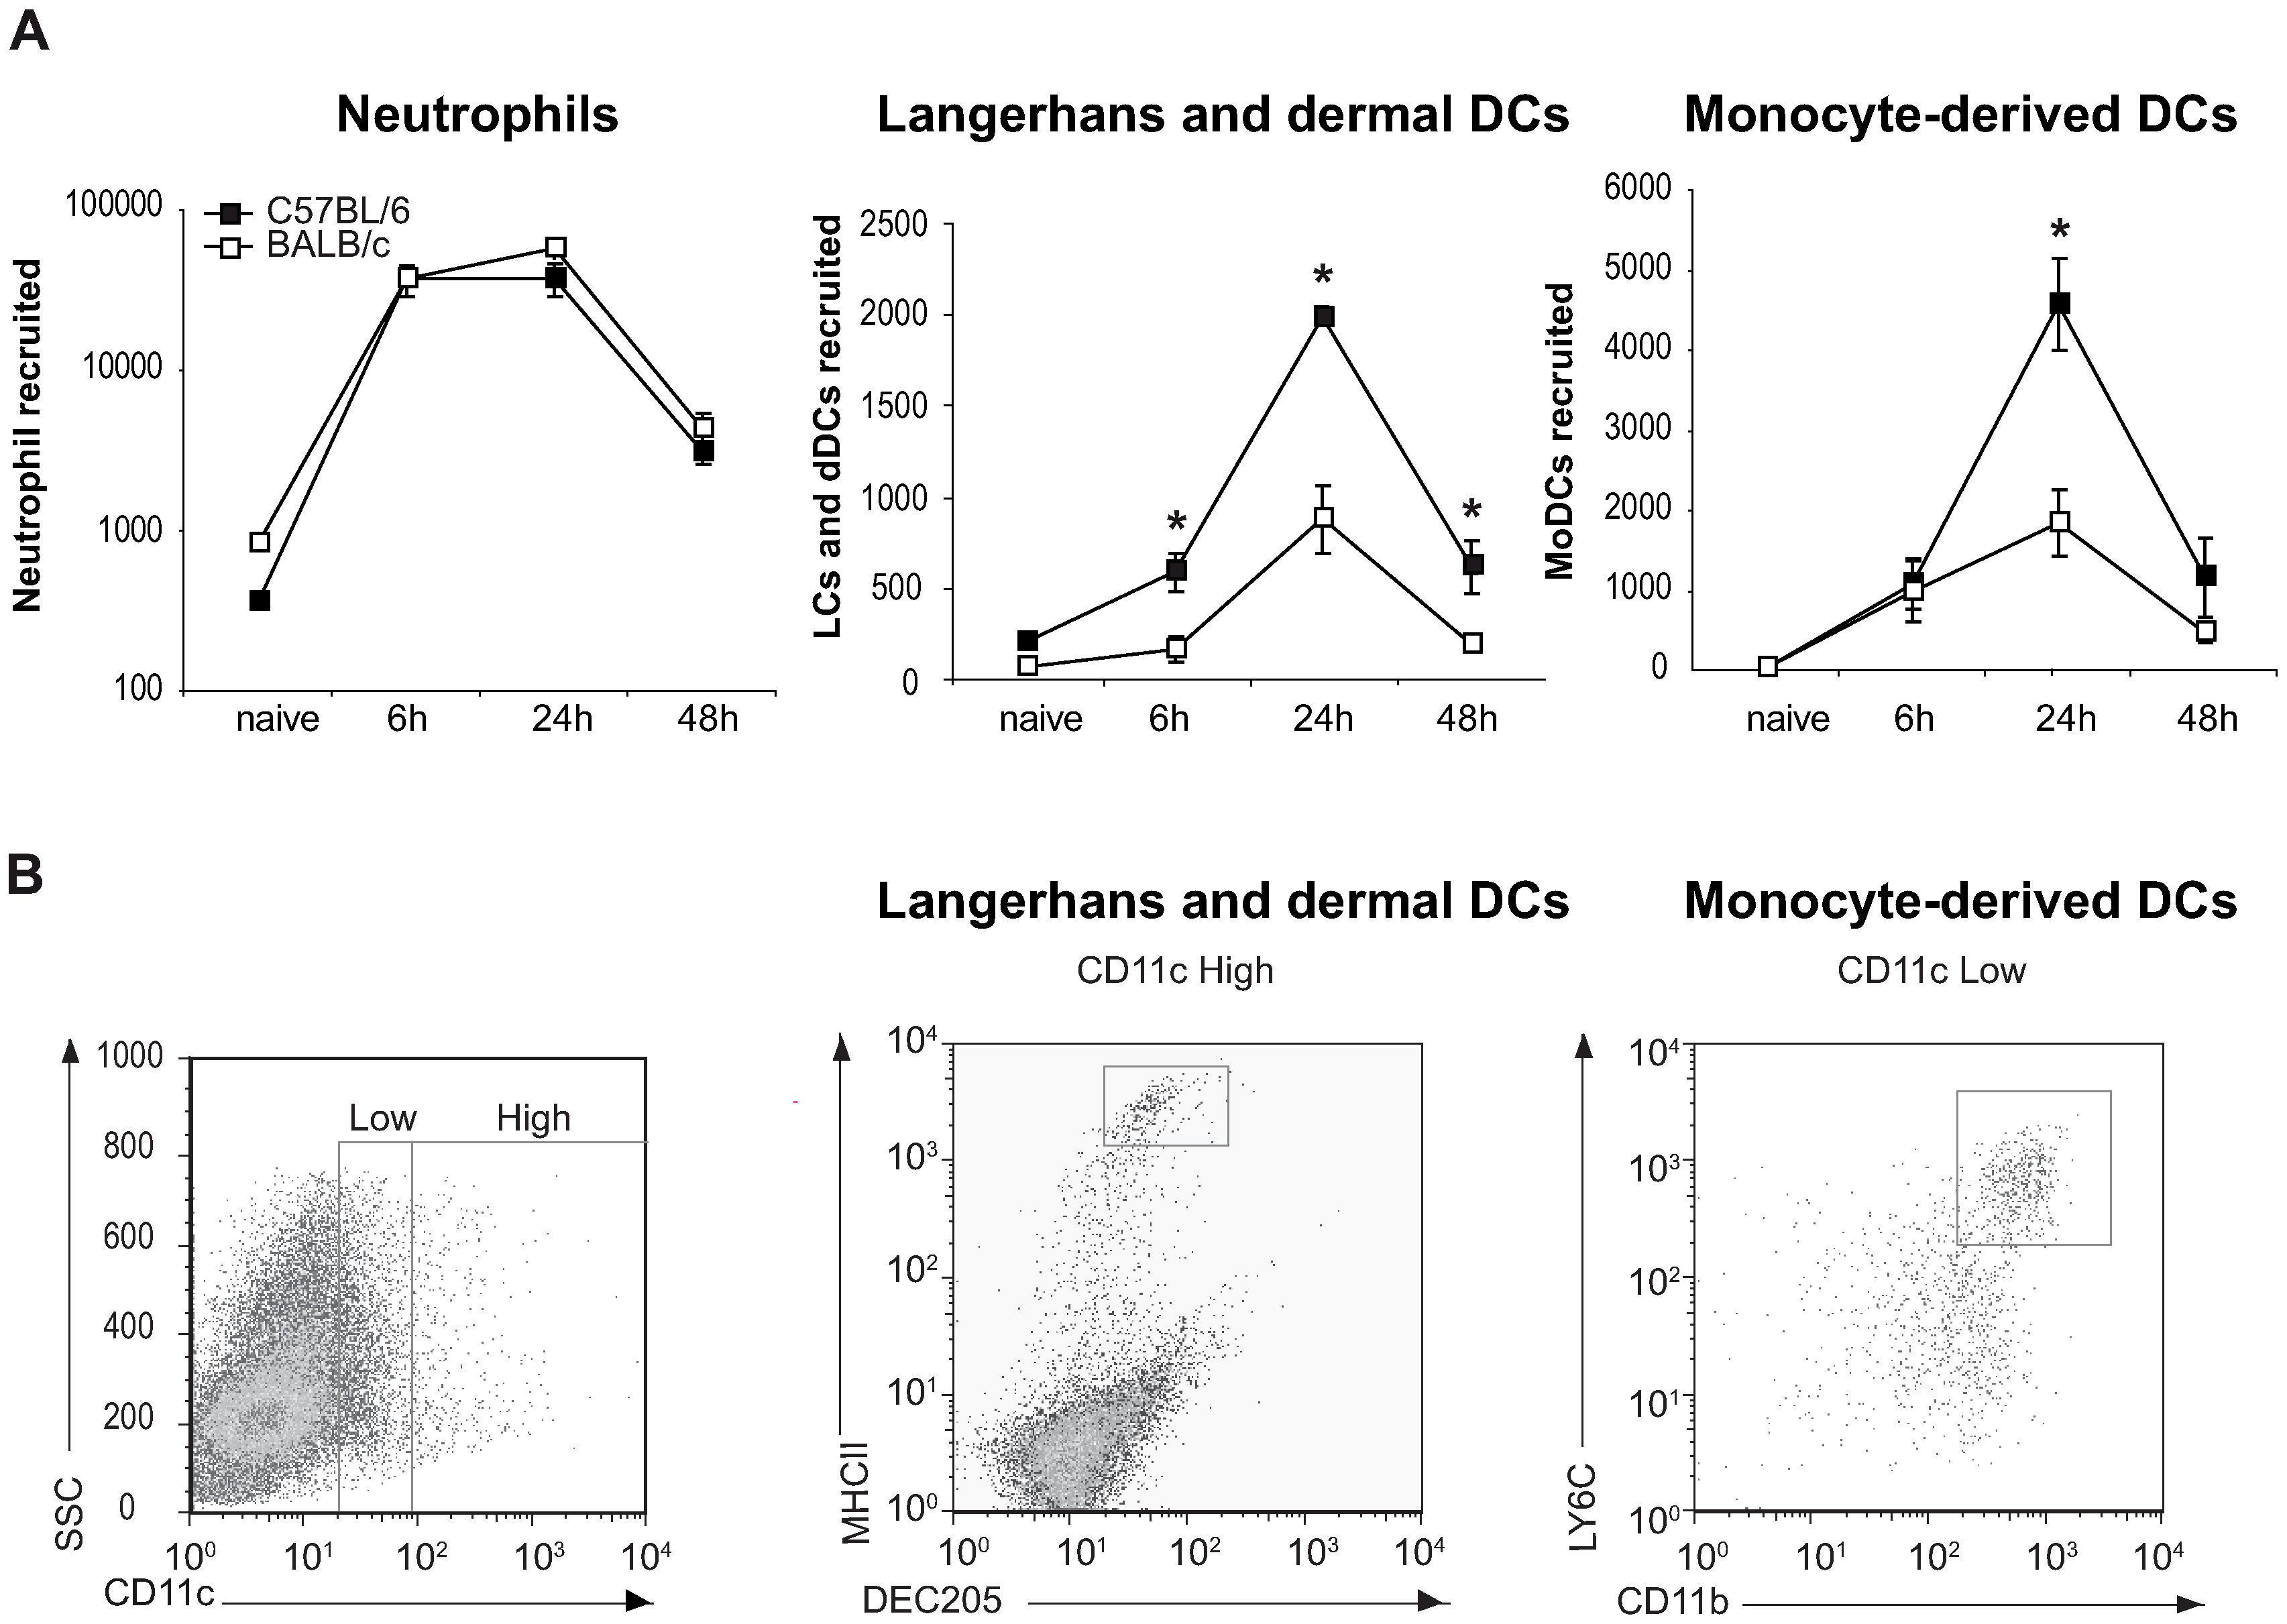 Higher number of DCs are recruited to the ear dermis of <i>L. major</i> infected C57BL/6 compared to BALB/c mice.